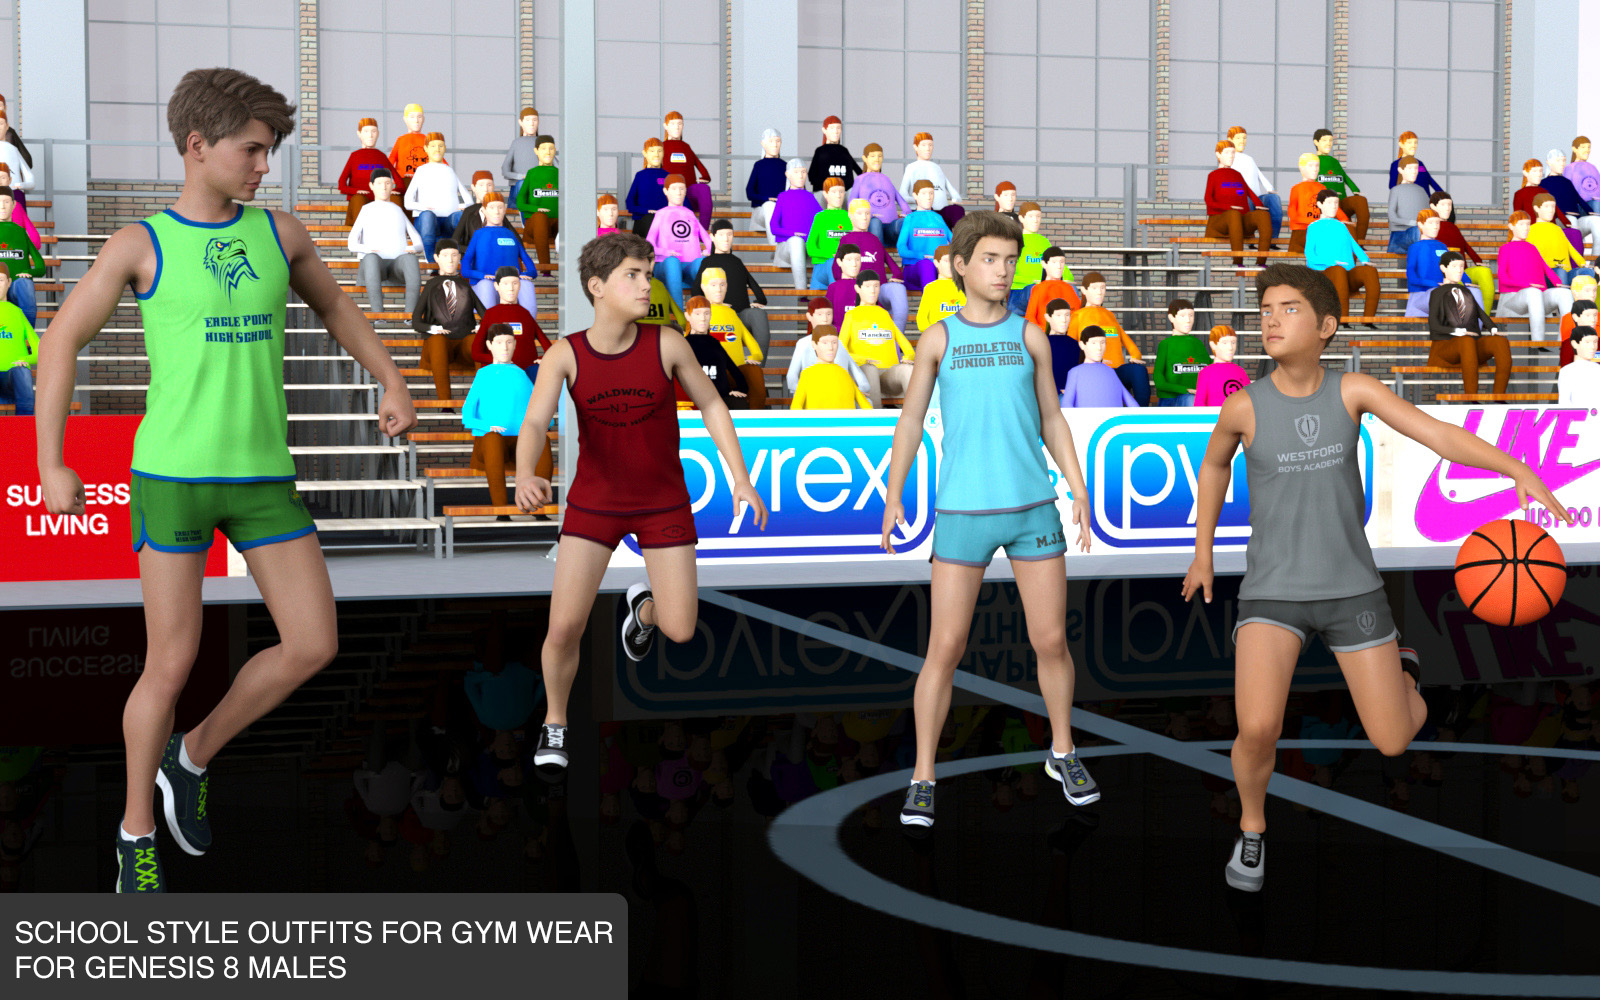 School Sports Outfits for Gym Wear for Genesis 8 Males